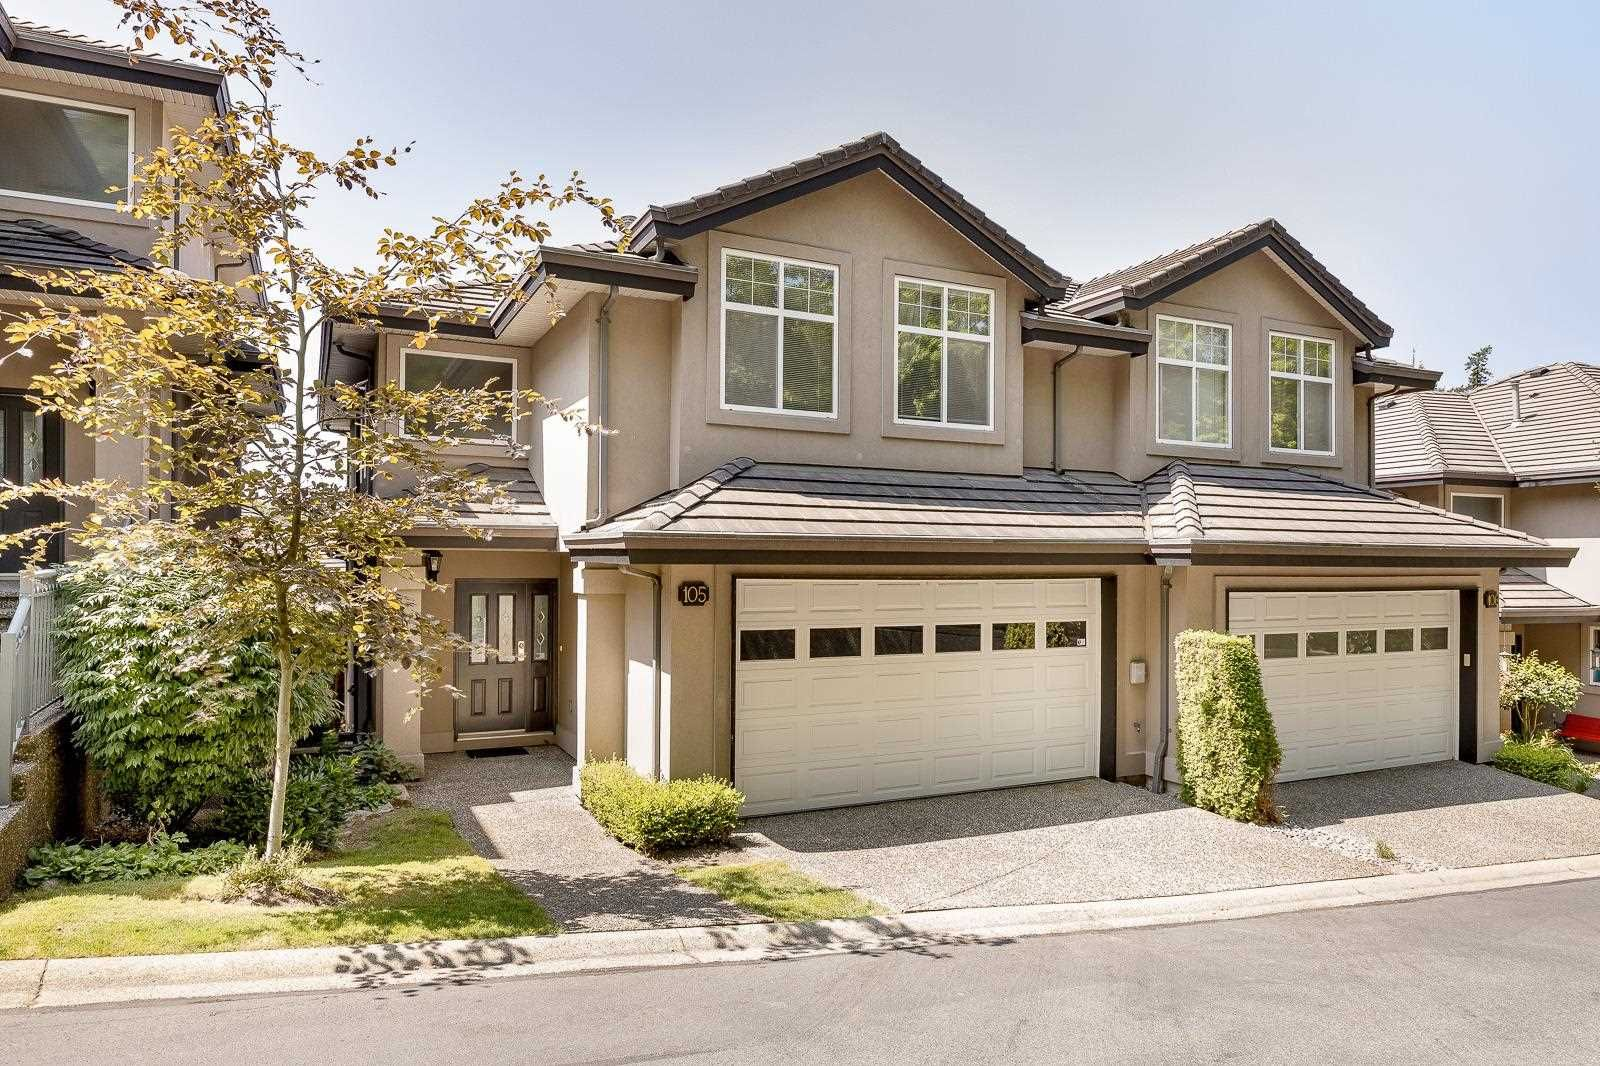 """Main Photo: 105 678 CITADEL Drive in Port Coquitlam: Citadel PQ Townhouse for sale in """"CITADEL POINT"""" : MLS®# R2604653"""